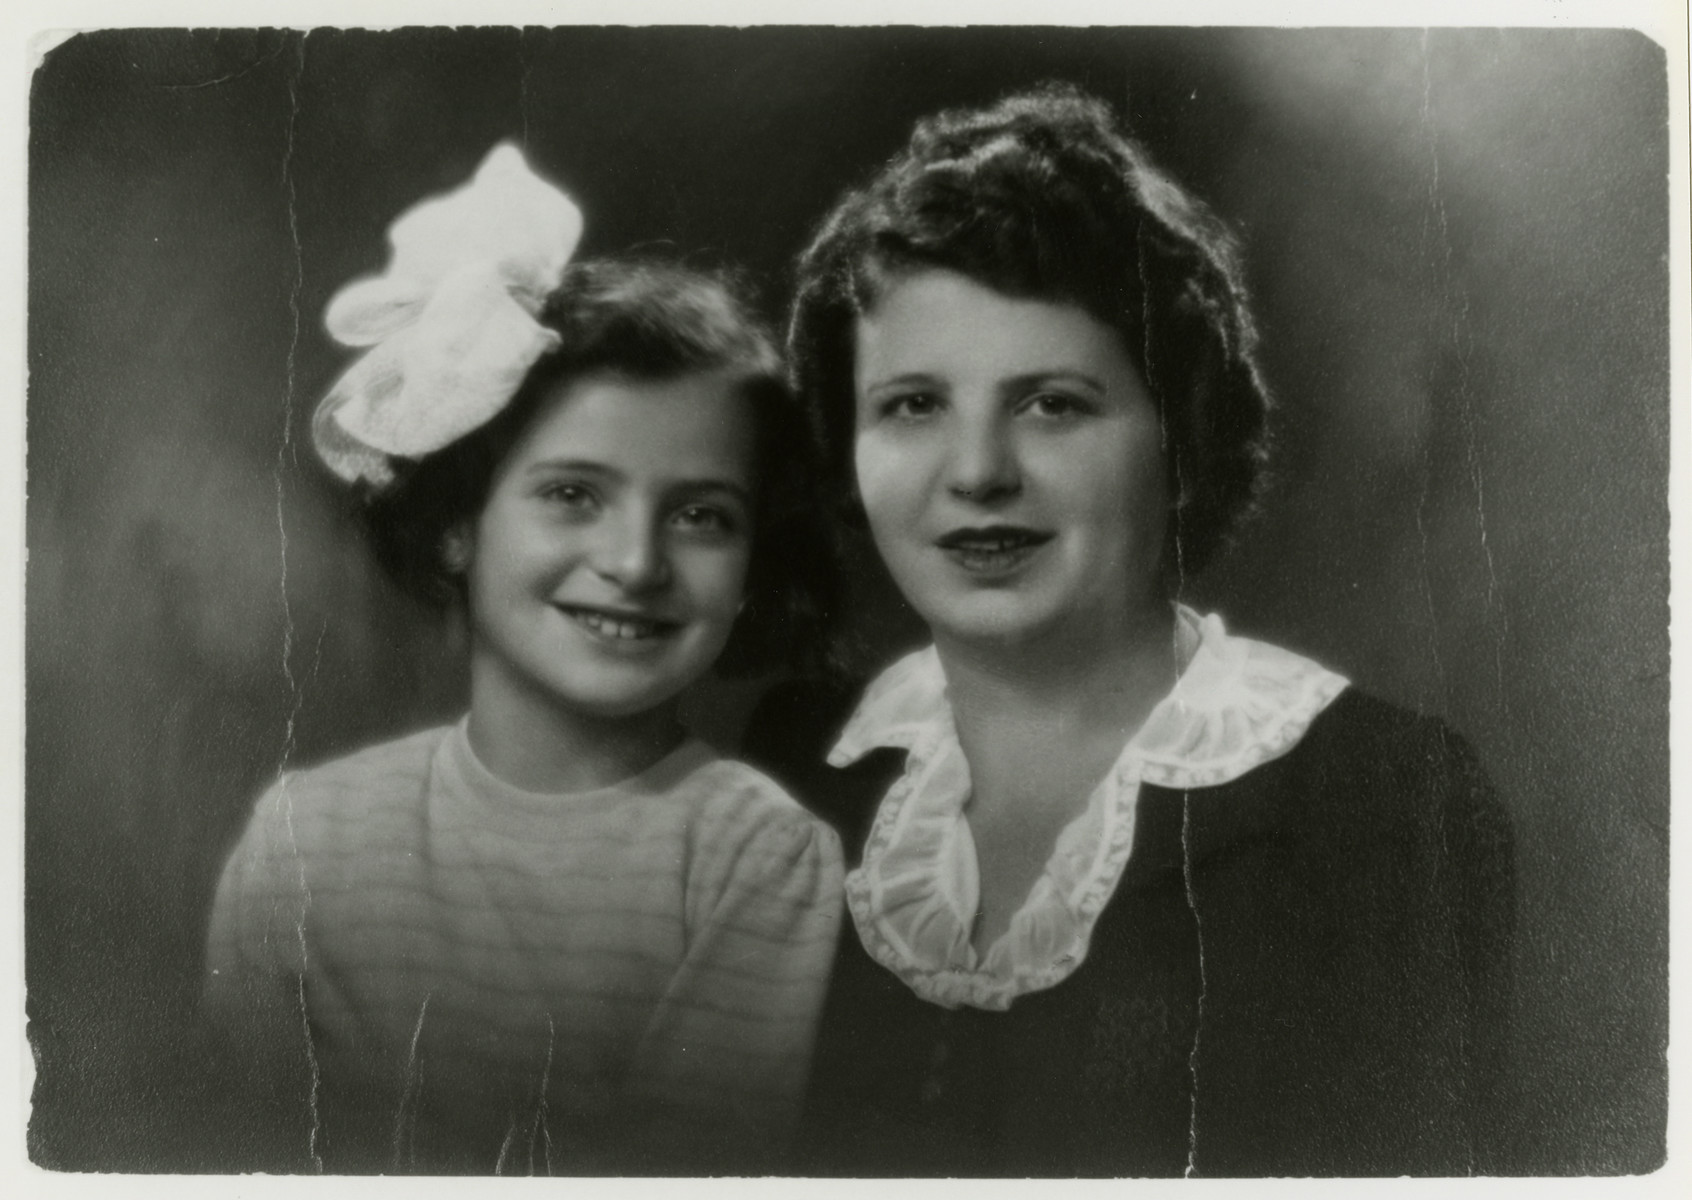 Postwar portrait of Sima Schwalb with her daughter Renee.